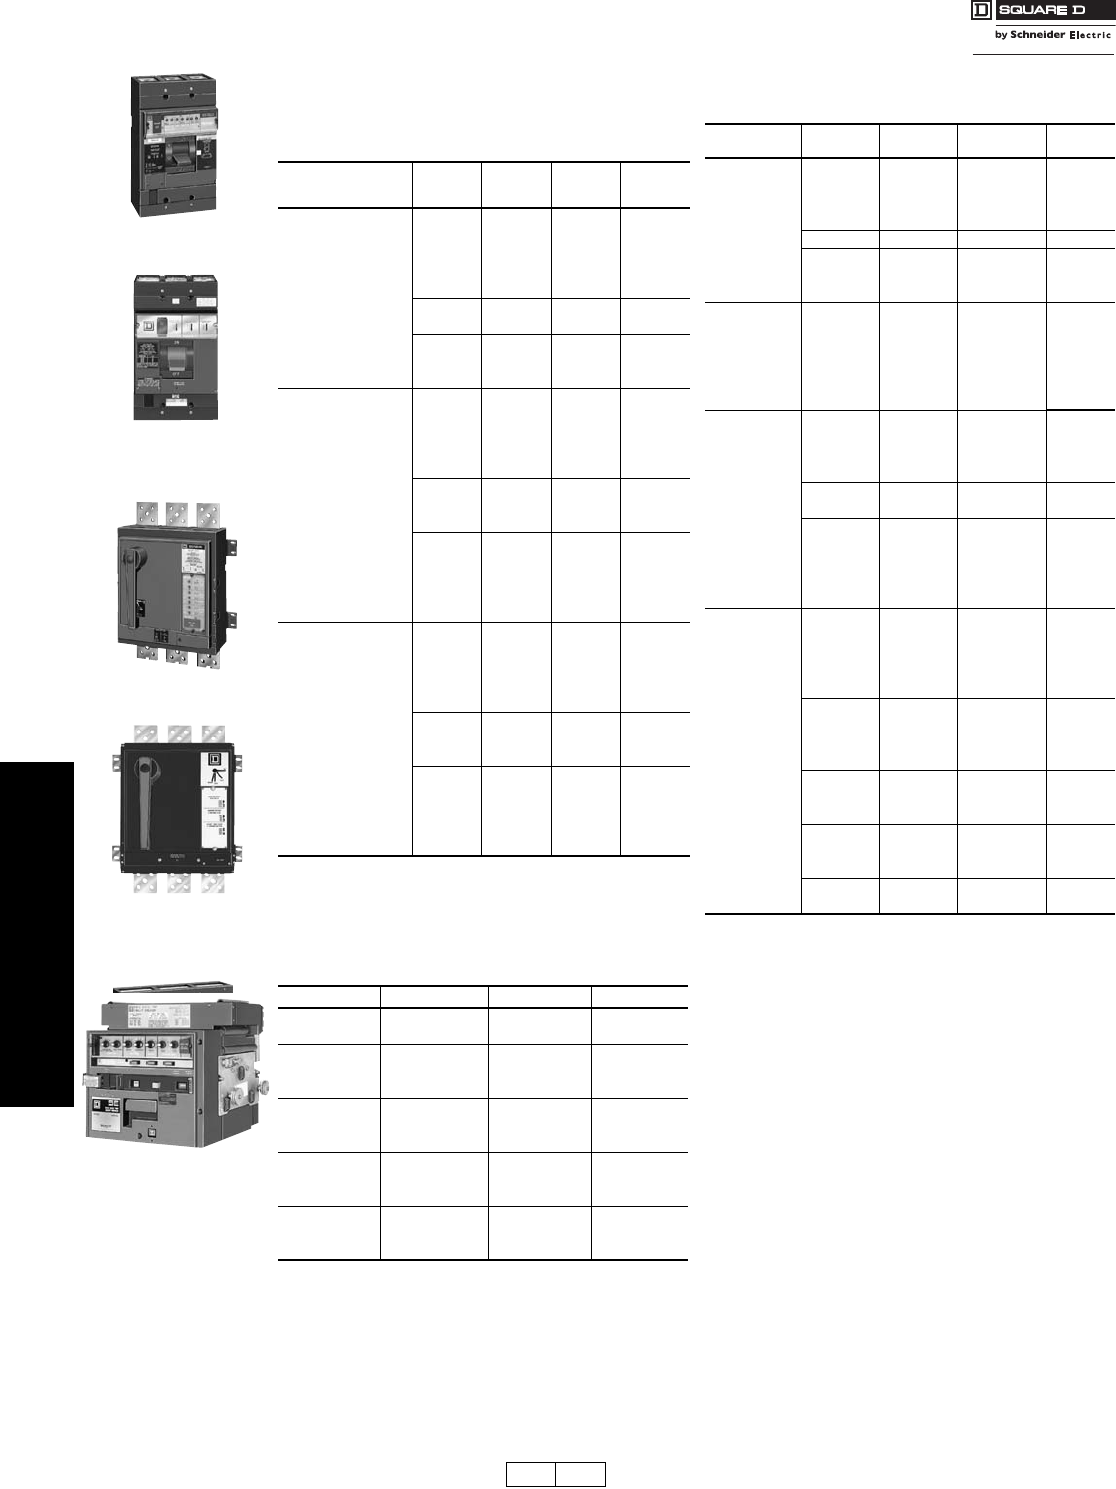 Obsolescent And Obsolete Circuit Breakers Sd Brochure Details About Square D Kal36100 100 Amp 600 Volts Breaker Schneider Electricus 11